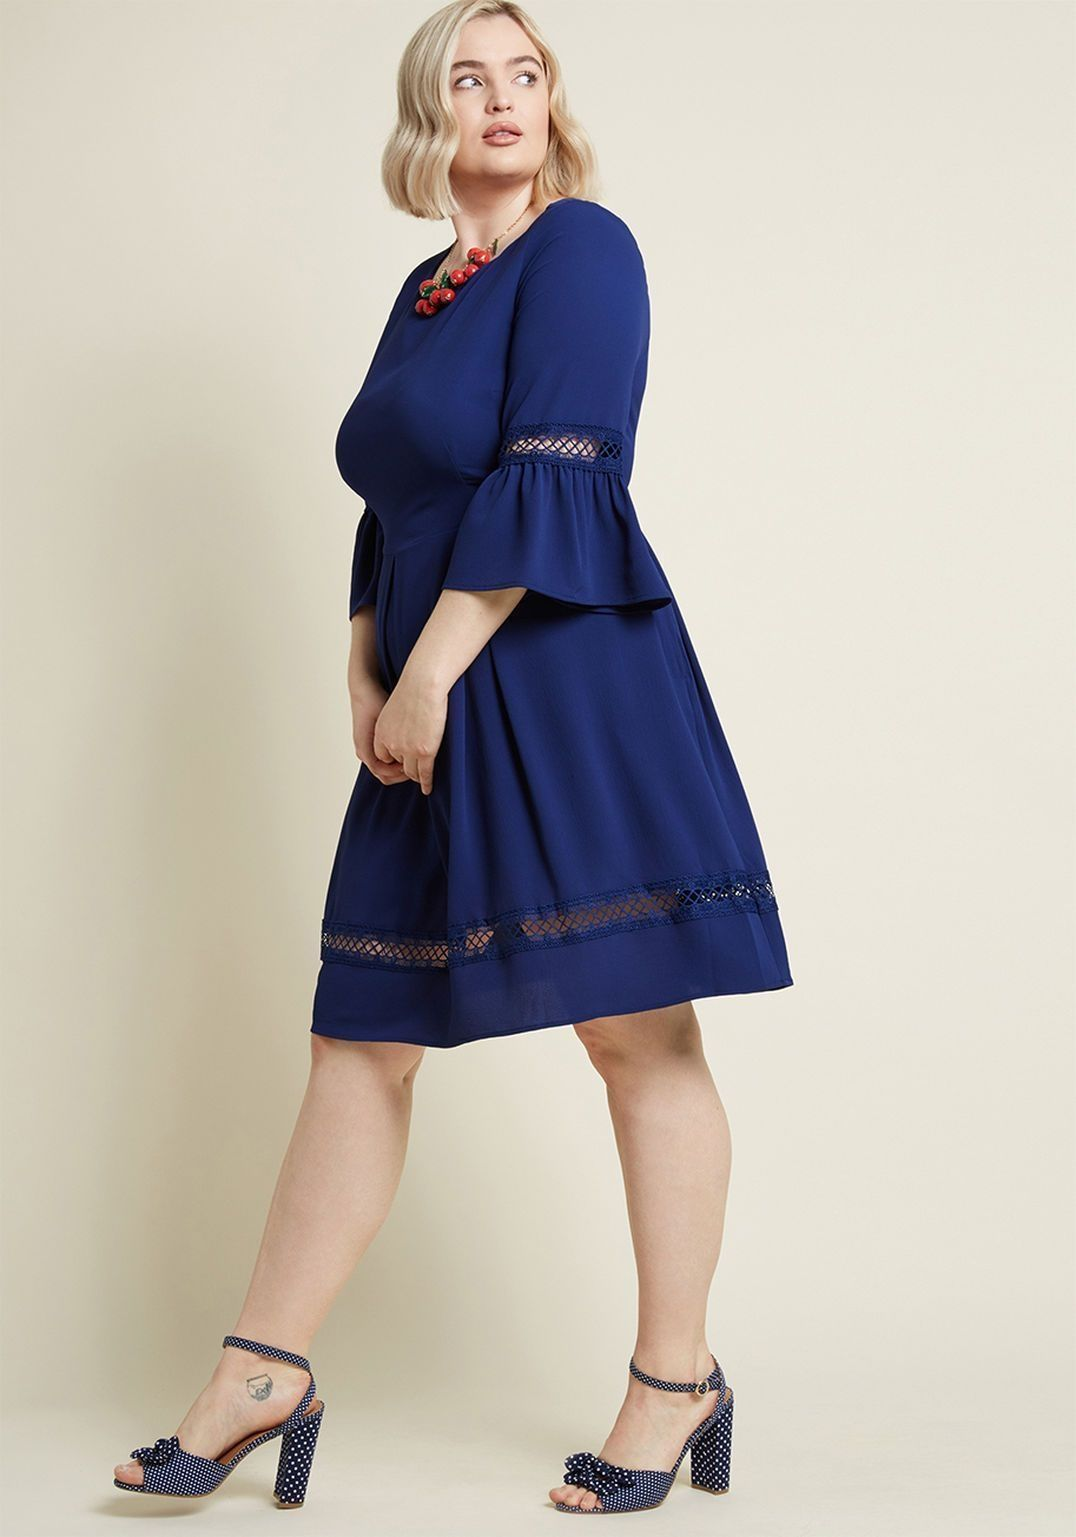 casual dress plus size for women over this fall winter women